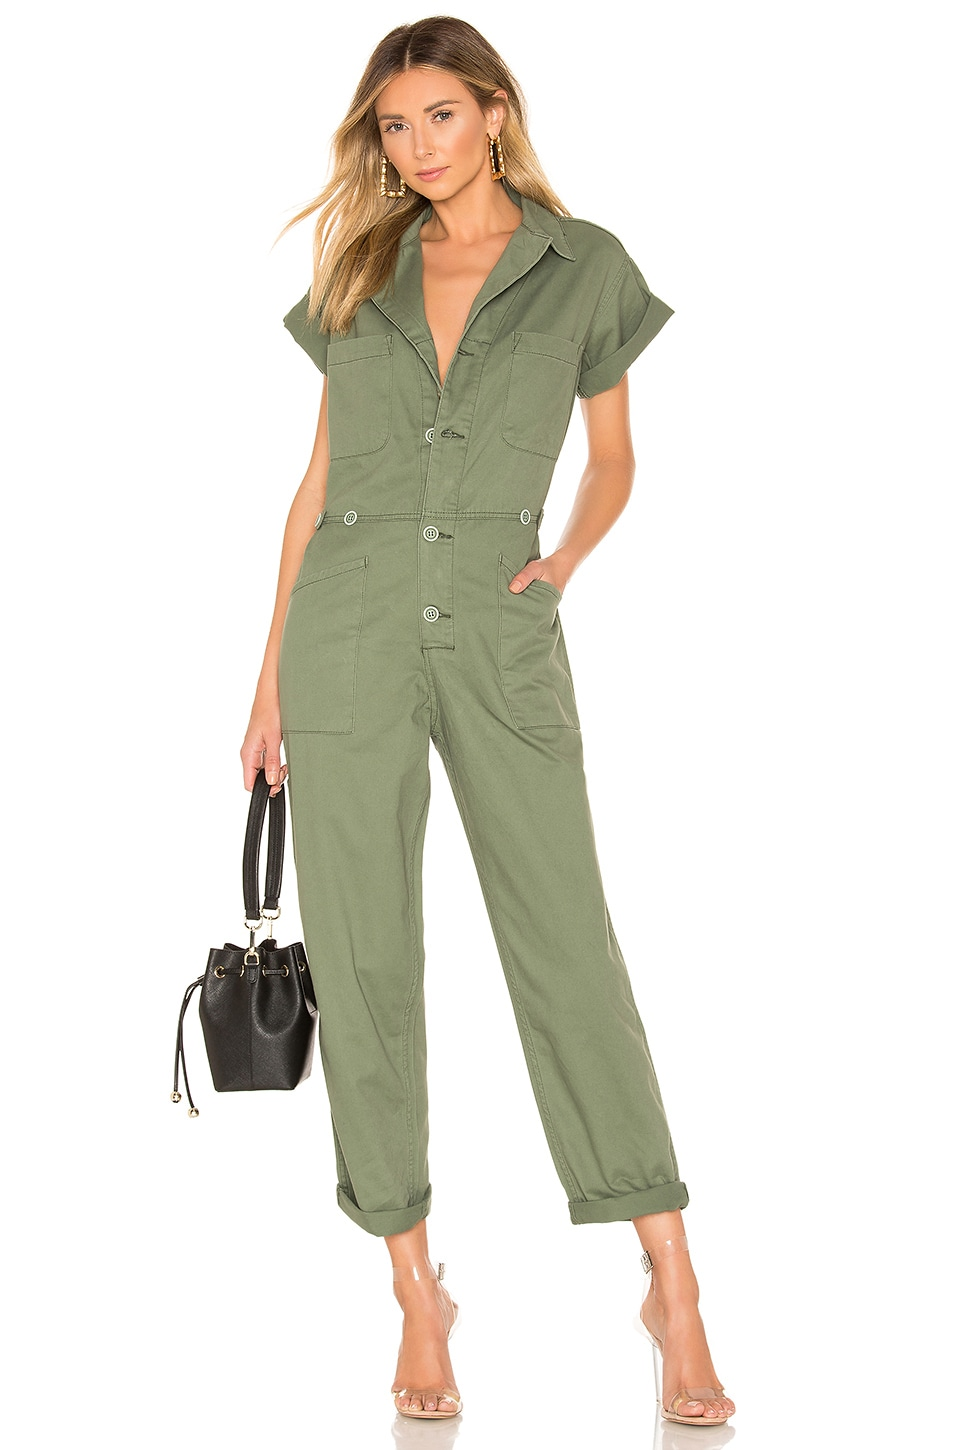 PISTOLA Grover Field Suit in Colonel